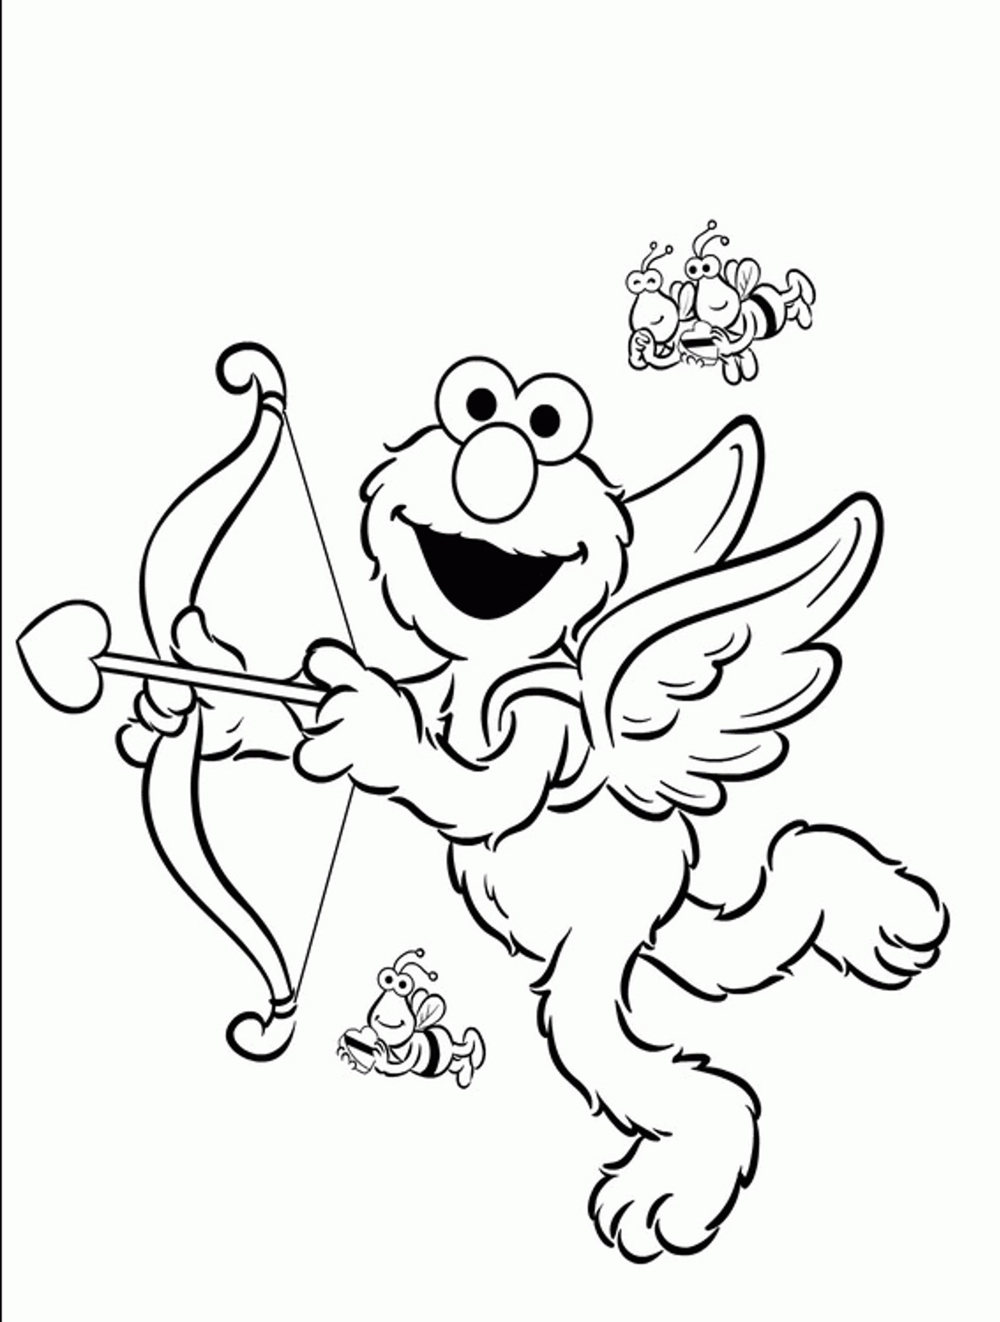 Elmo Coloring Pages for Children's Home Activity